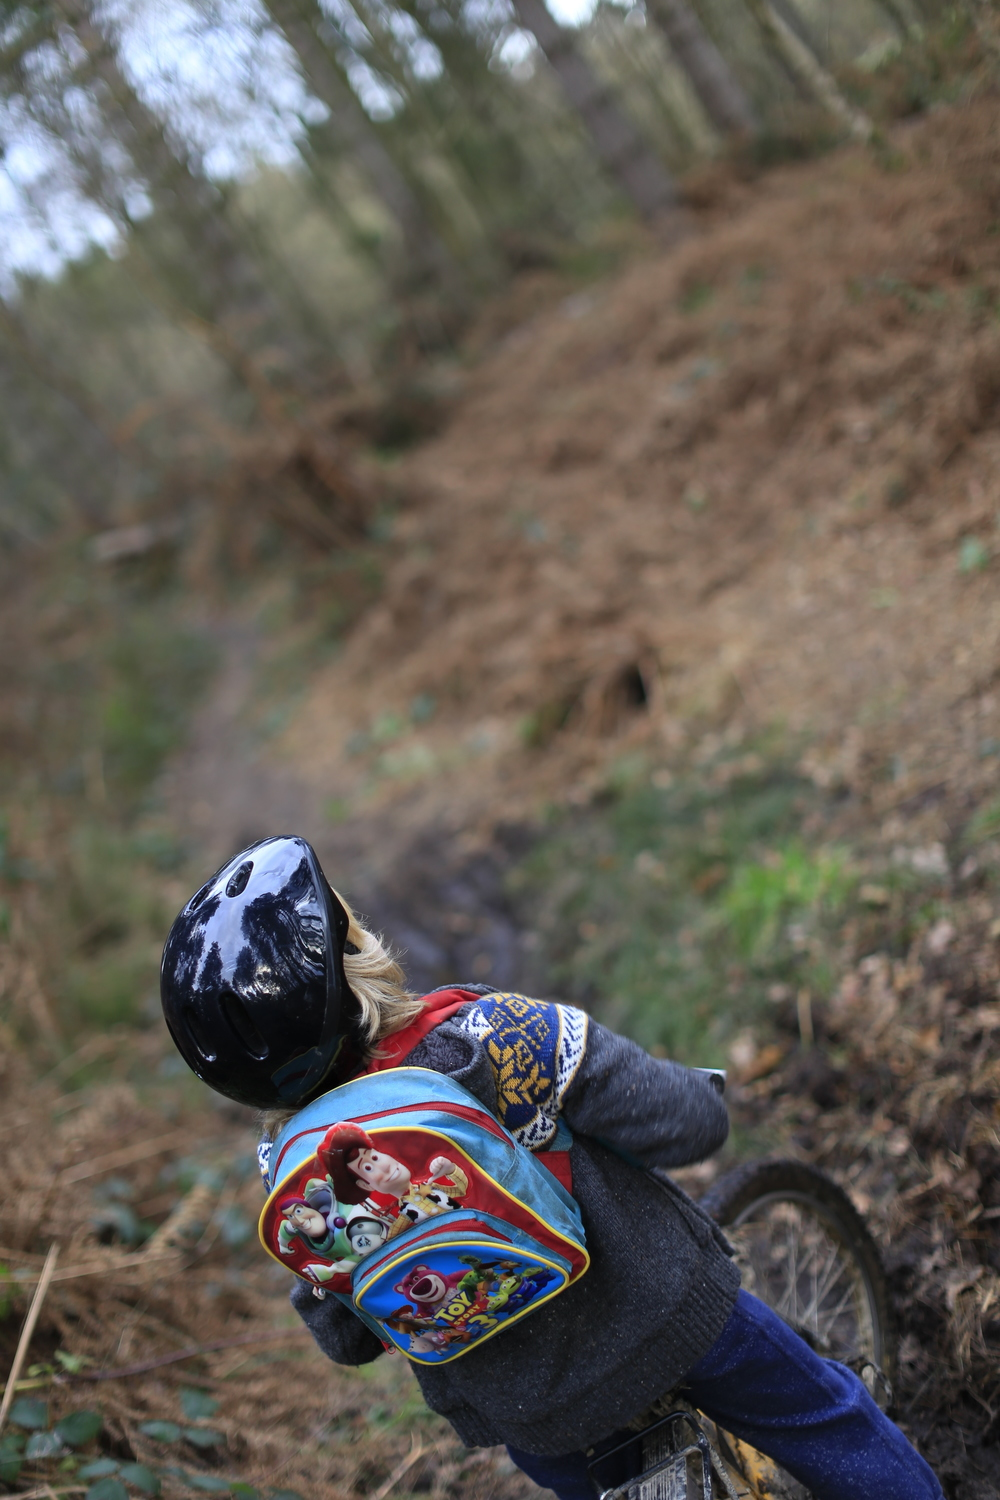 toy story, toy story rucksack, biking, singletrack, woods, off road, mtb, nature, canon 6d, canon